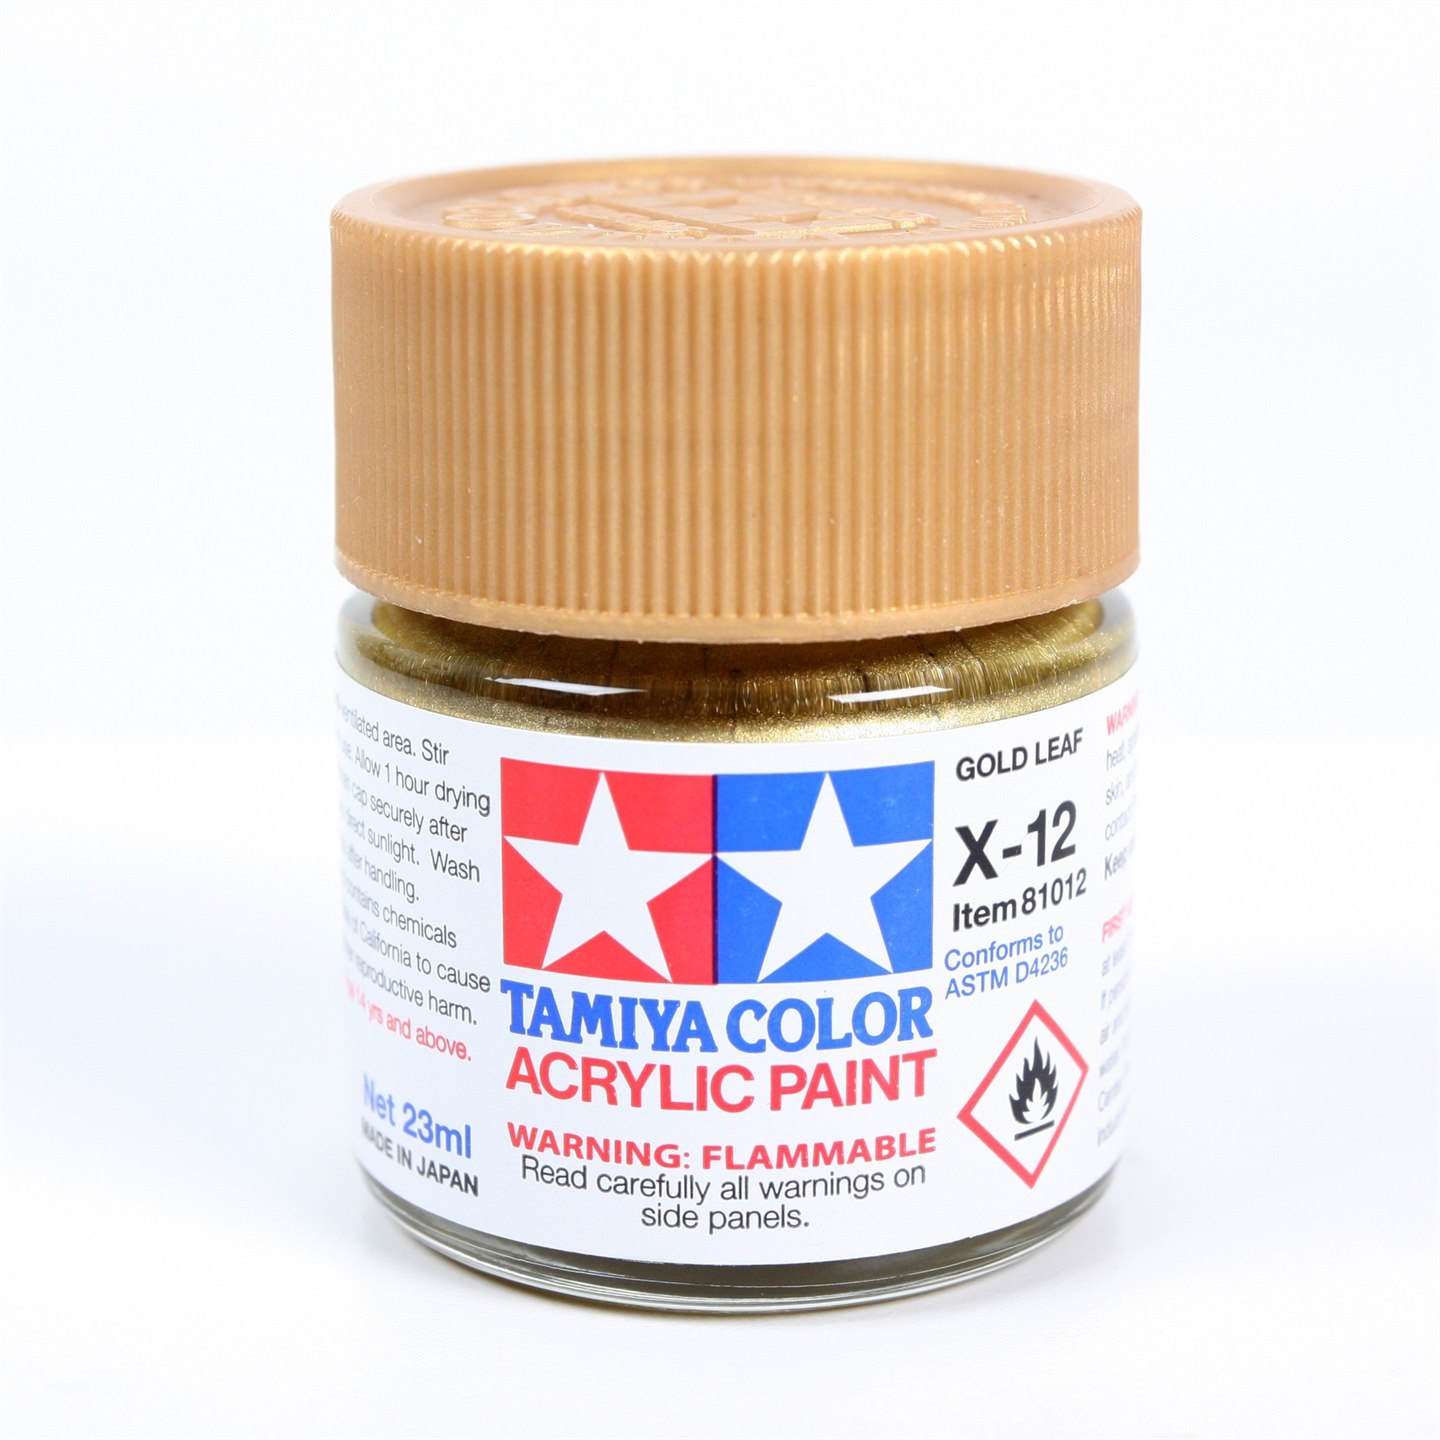 Tamiya Color Acrylic Paint X-12 (Gold Leaf) (23ml)